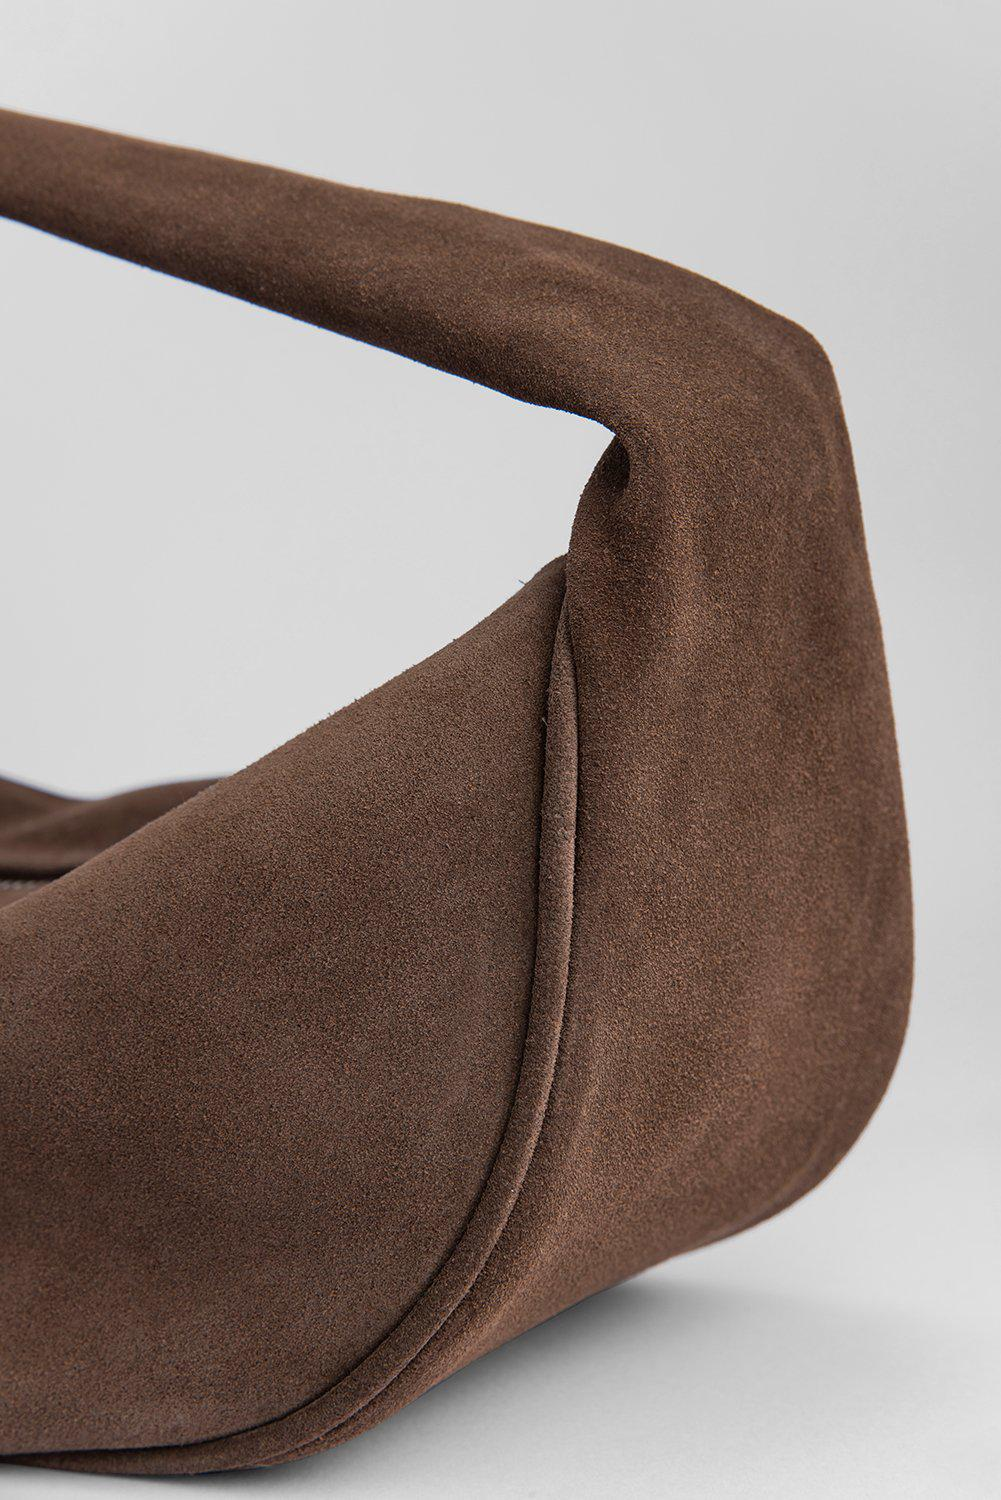 Cush Wood Suede Leather 3